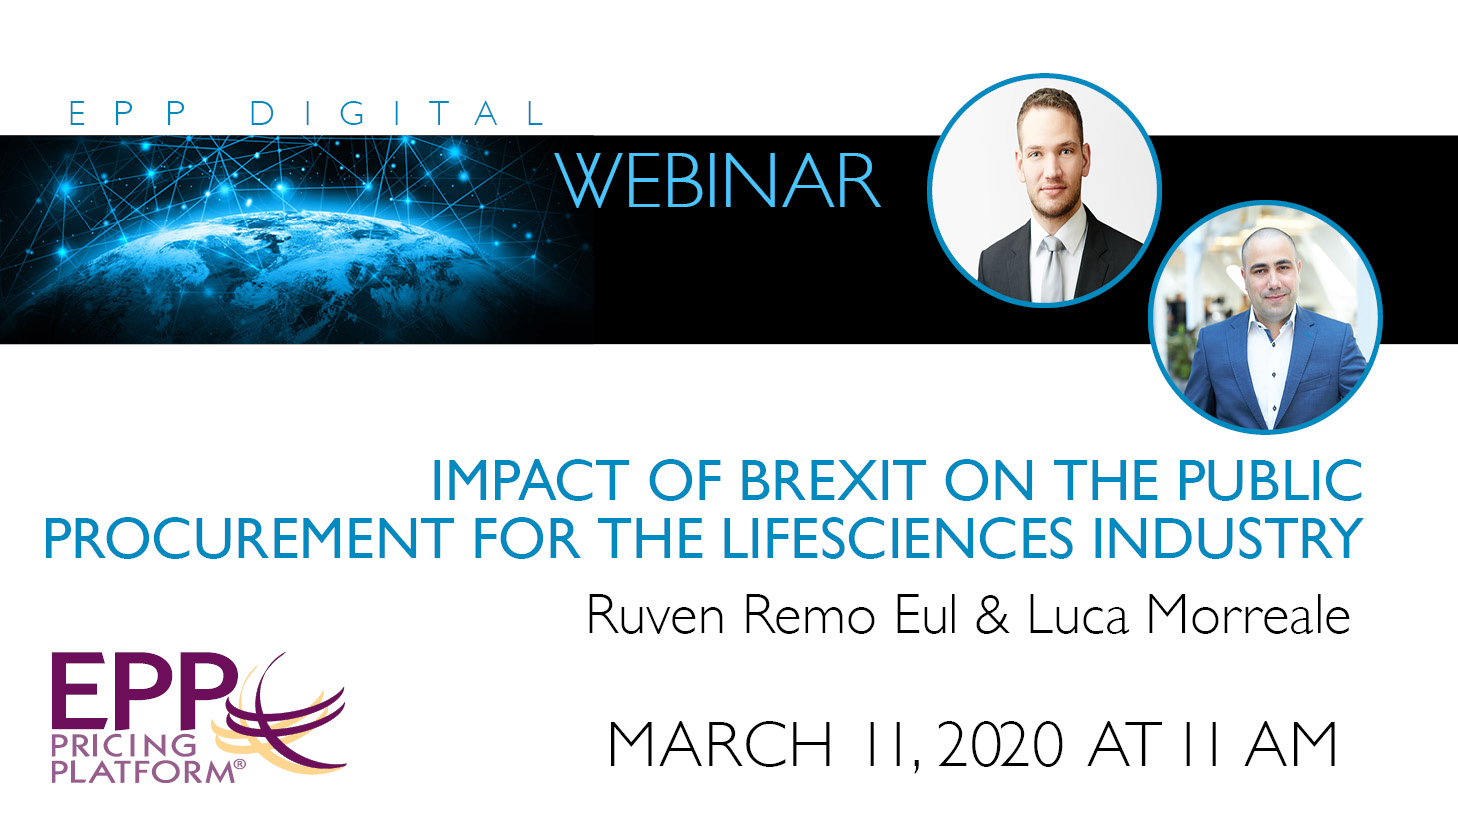 Impact of Brexit on the public procurement for the lifesciences industry